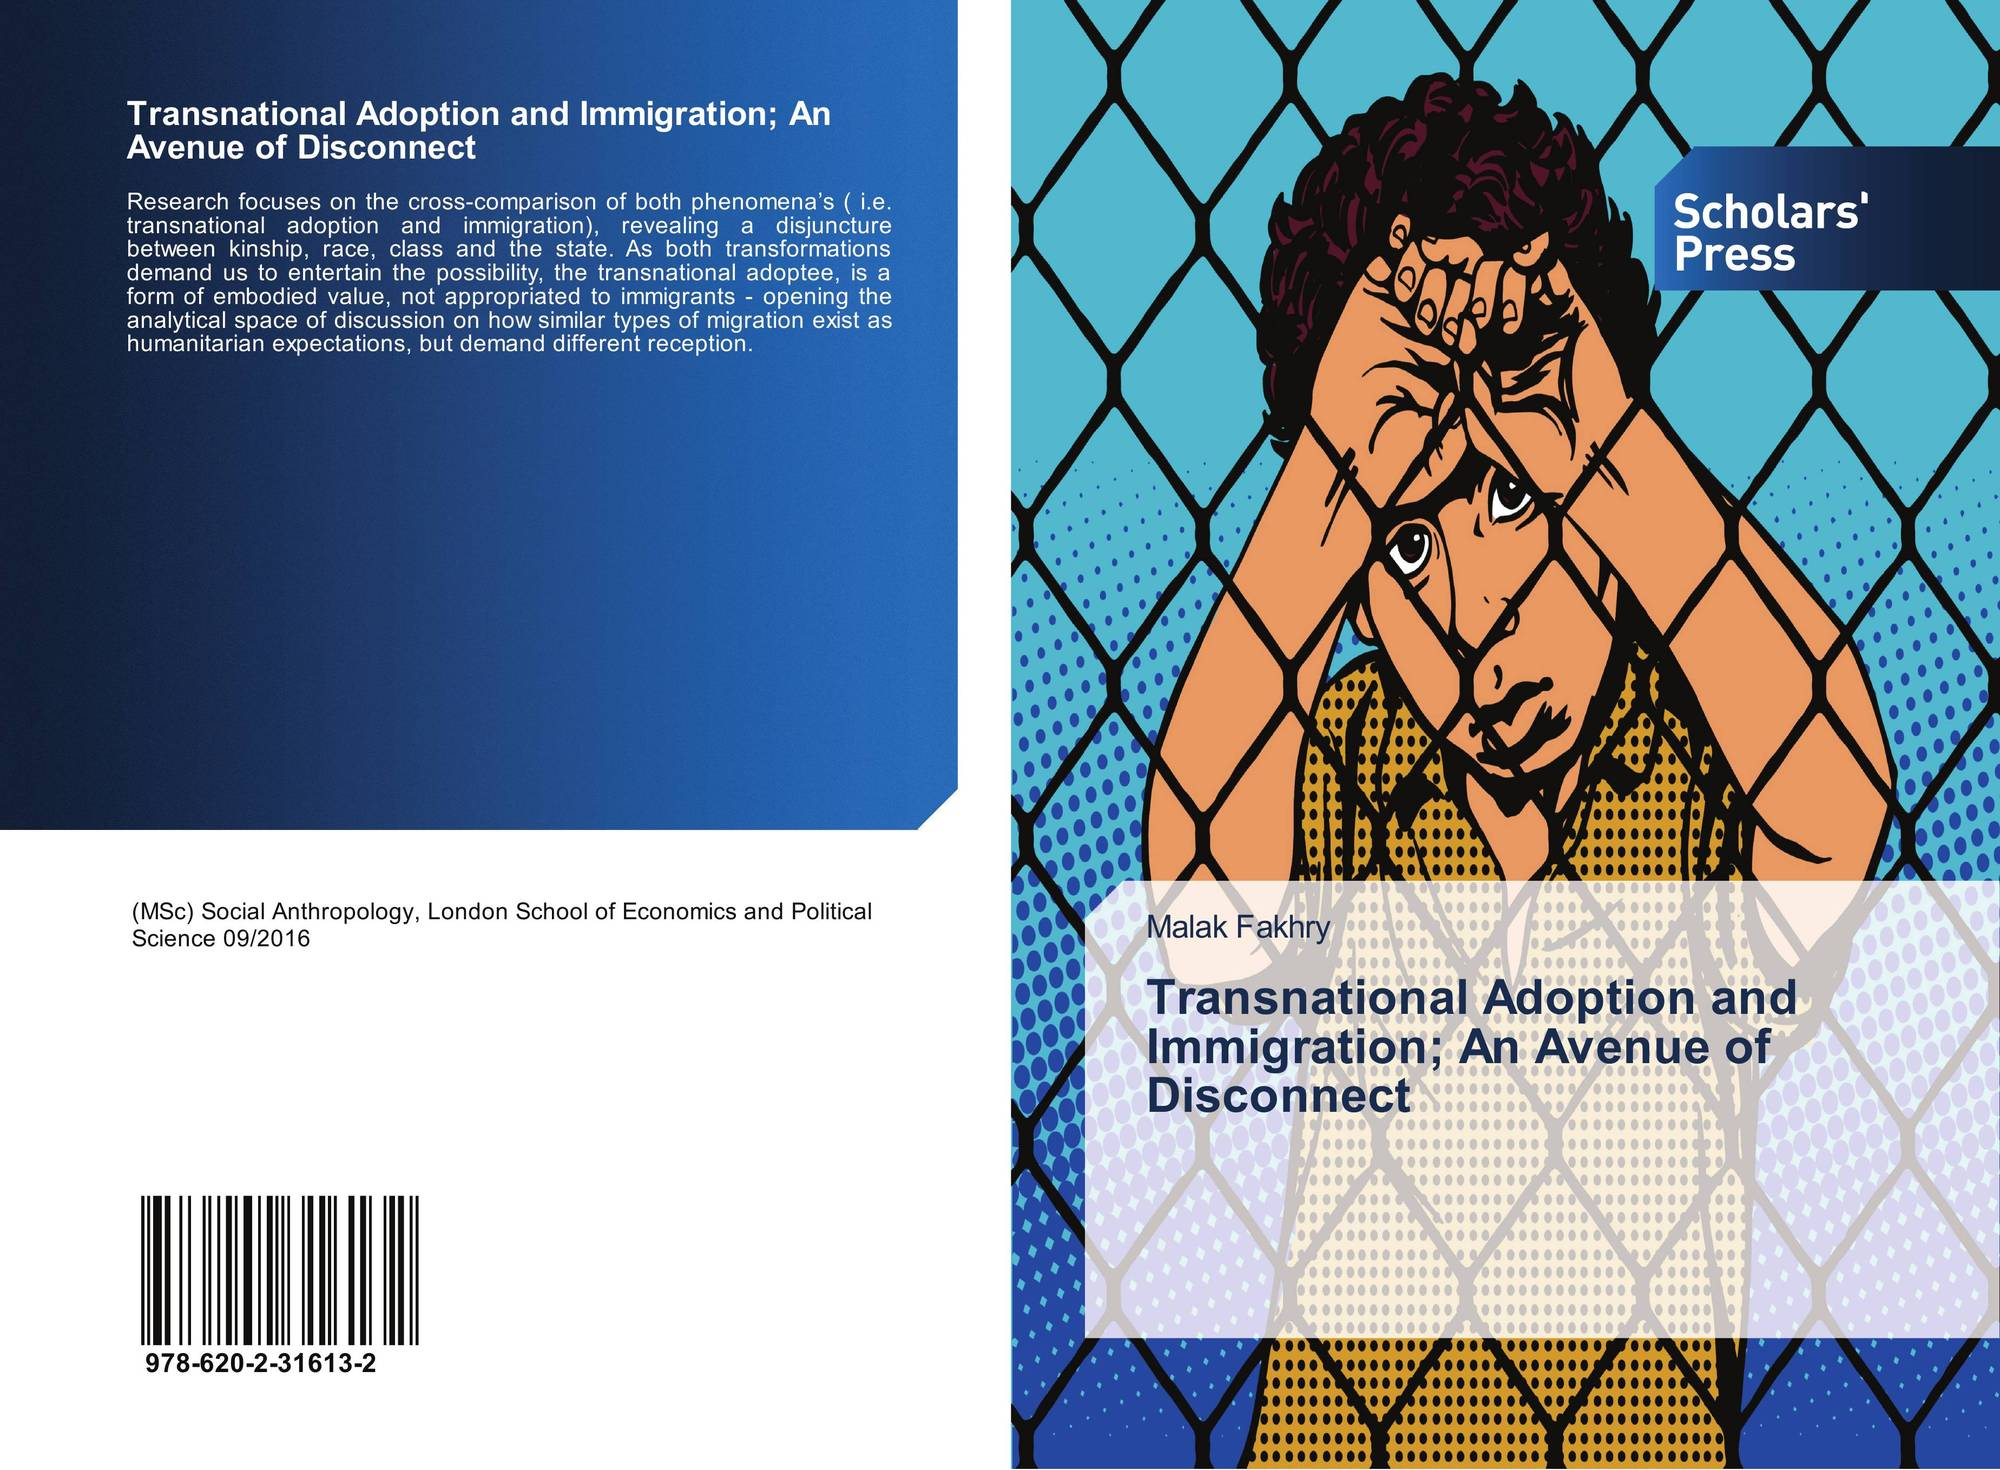 Transnational Adoption and Immigration